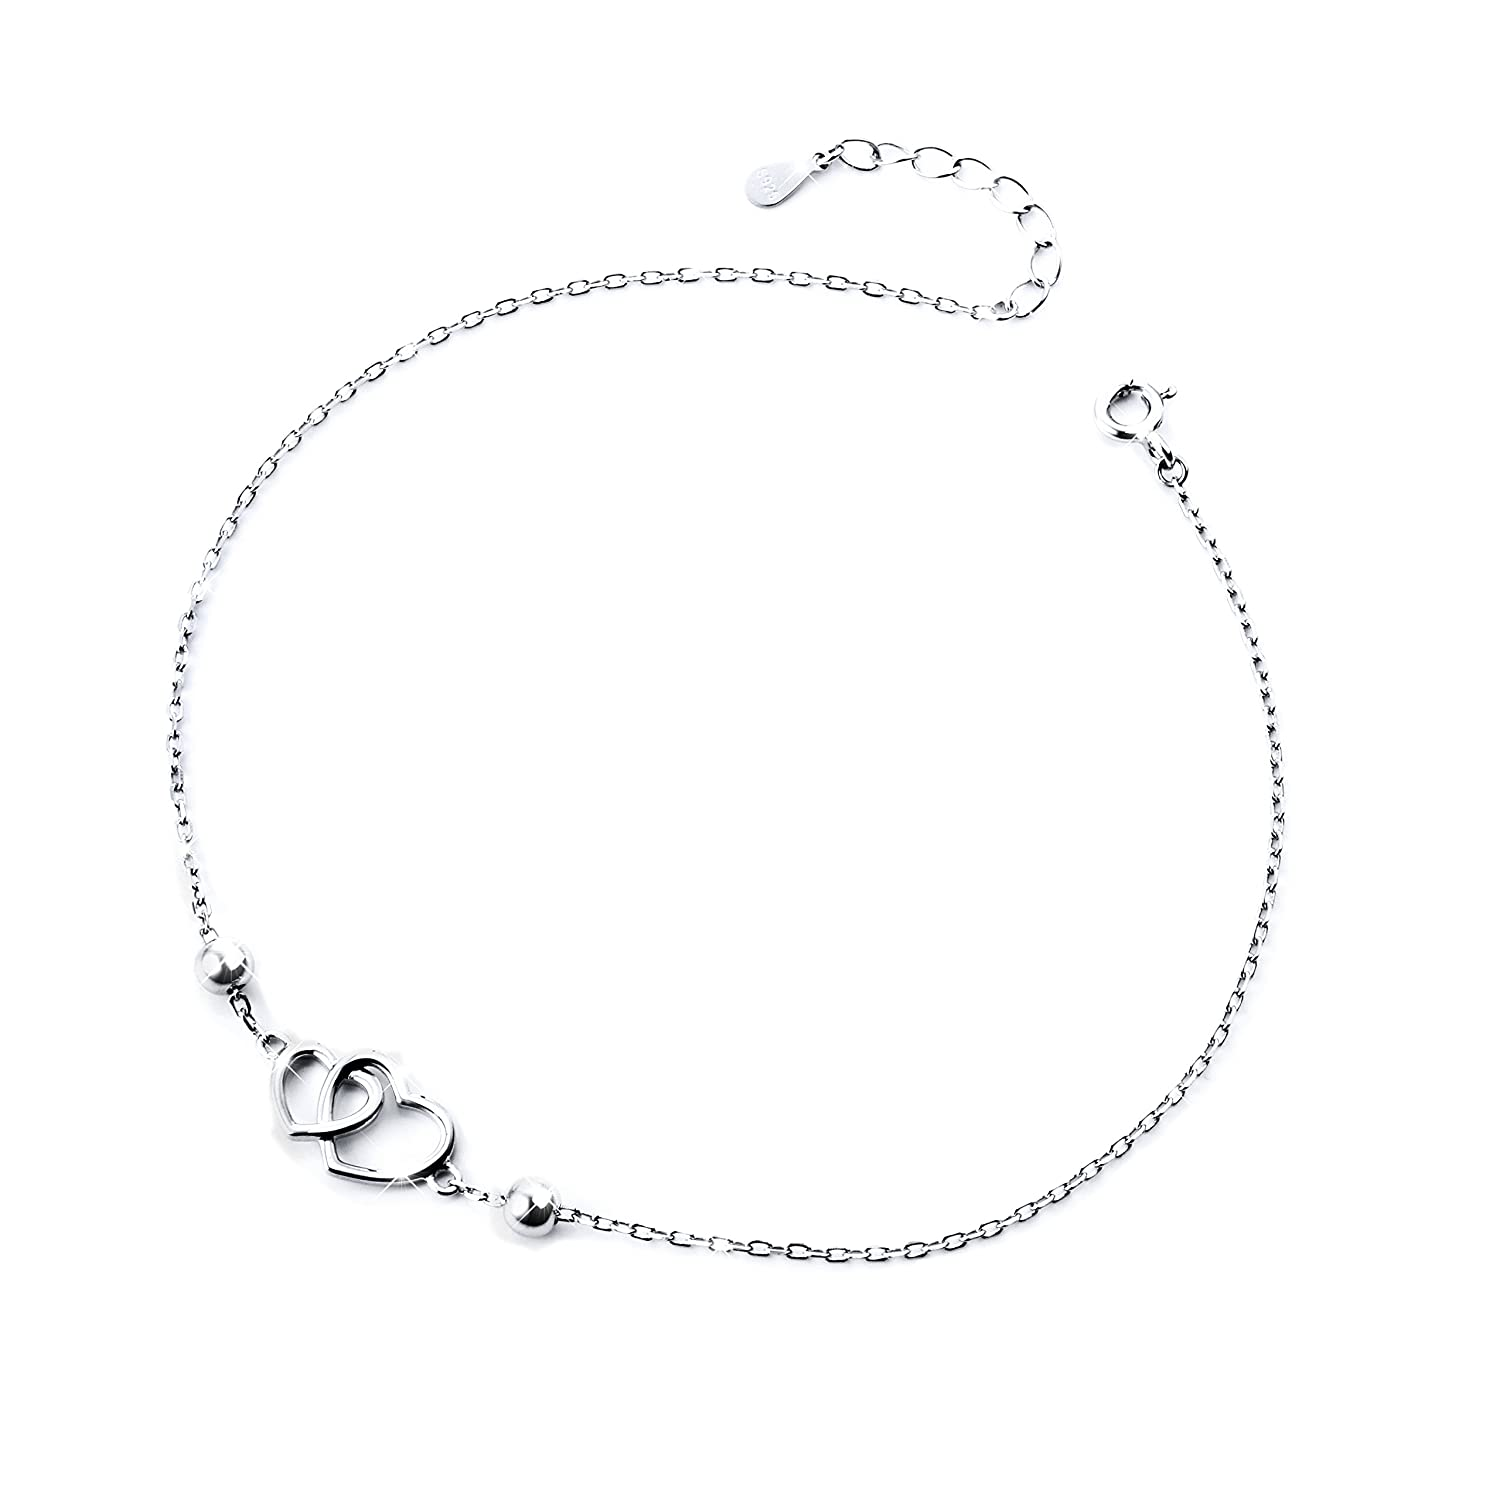 S925 Sterling Silver Anklet for Women Girl Adjustable Beach Style Foot Ankle Bracelet Jewelry Harmonyball Jewelry G10BNL1706002